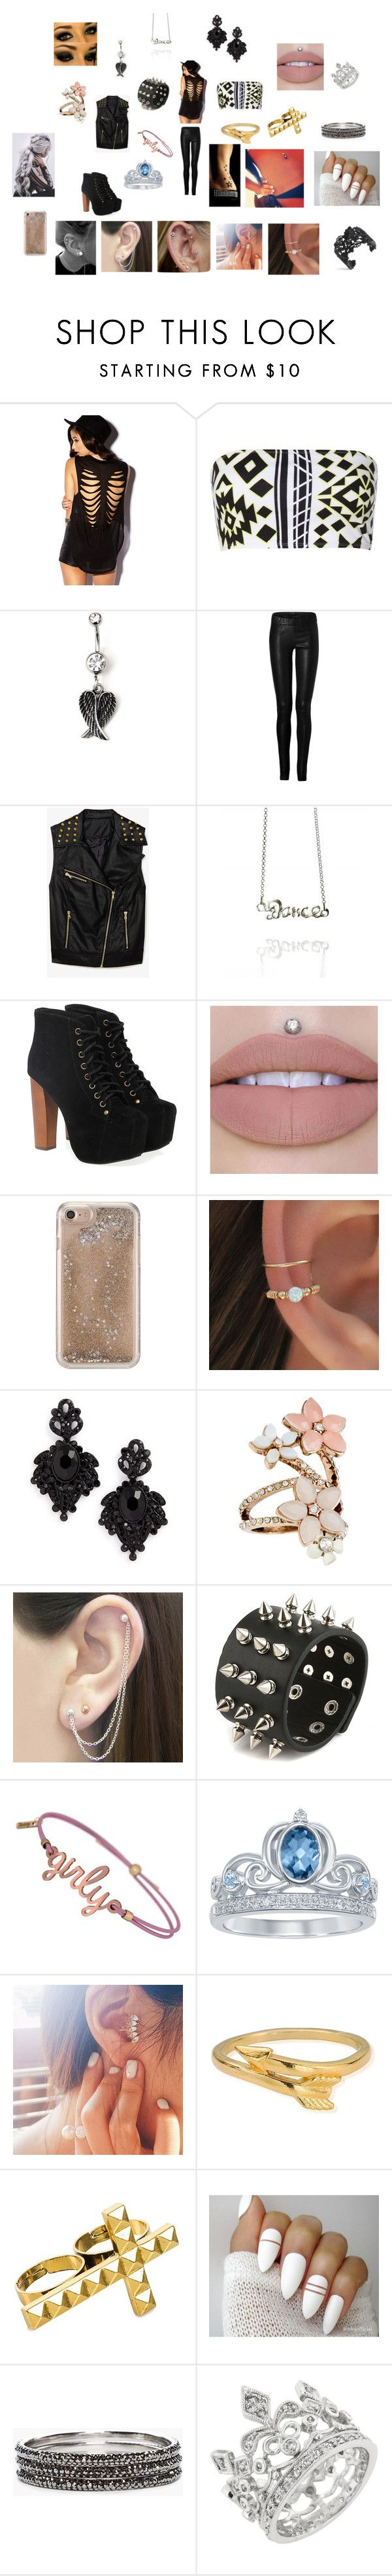 """""""Untitled #46"""" by megan13-02 on Polyvore featuring Forever 21, Jane Norman, Ventcouvert, Jeffrey Campbell, Agent 18, Tasha, Accessorize, Otis Jaxon, Disney and ChloBo"""